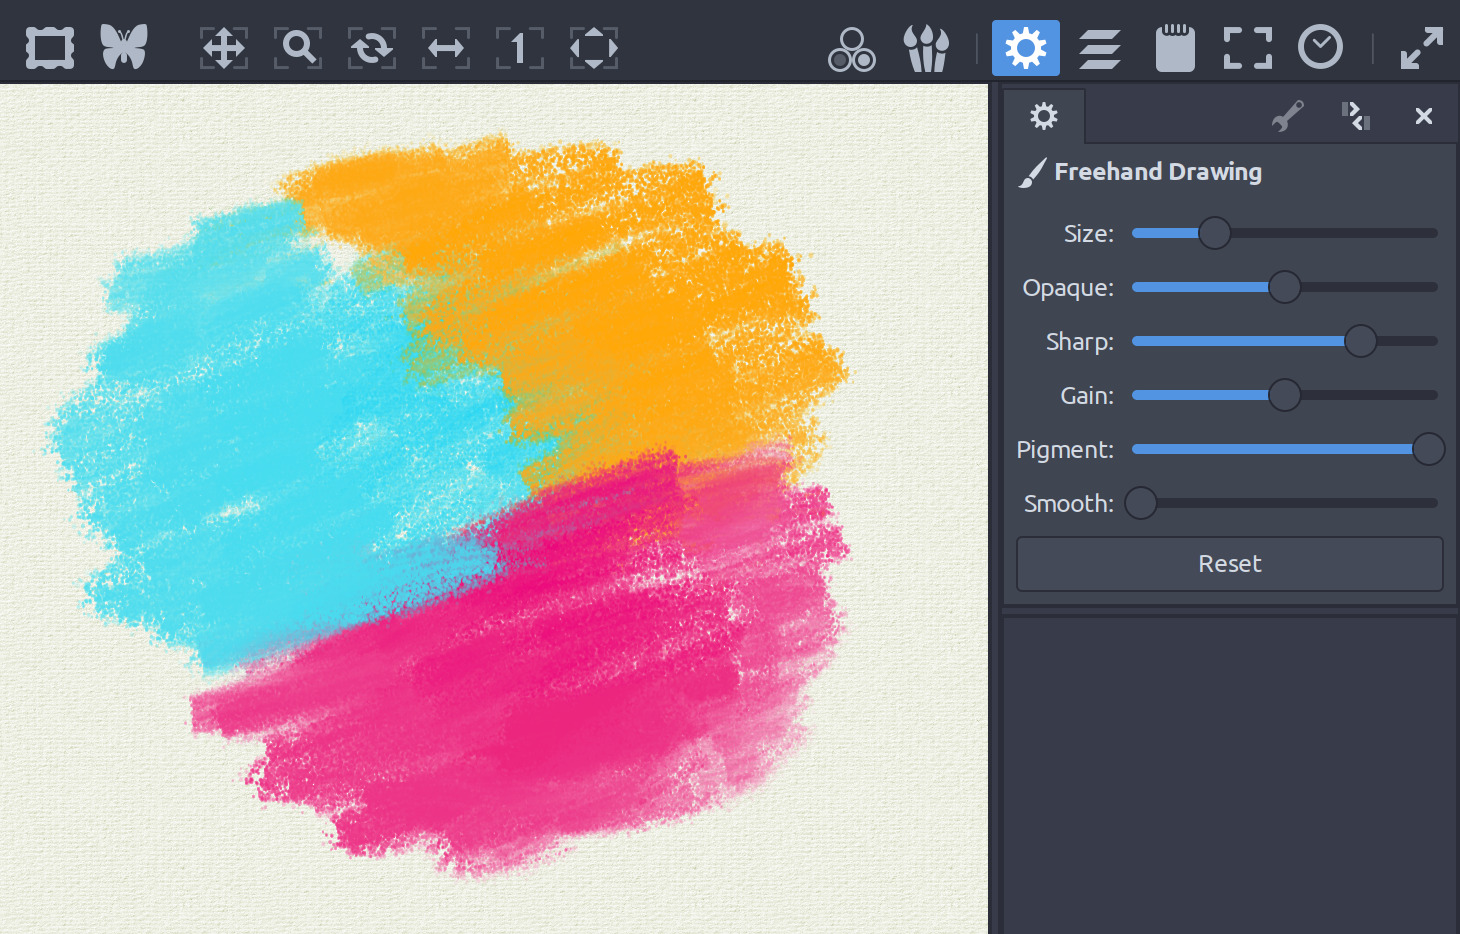 MyPaint 2.0 spectral mixing